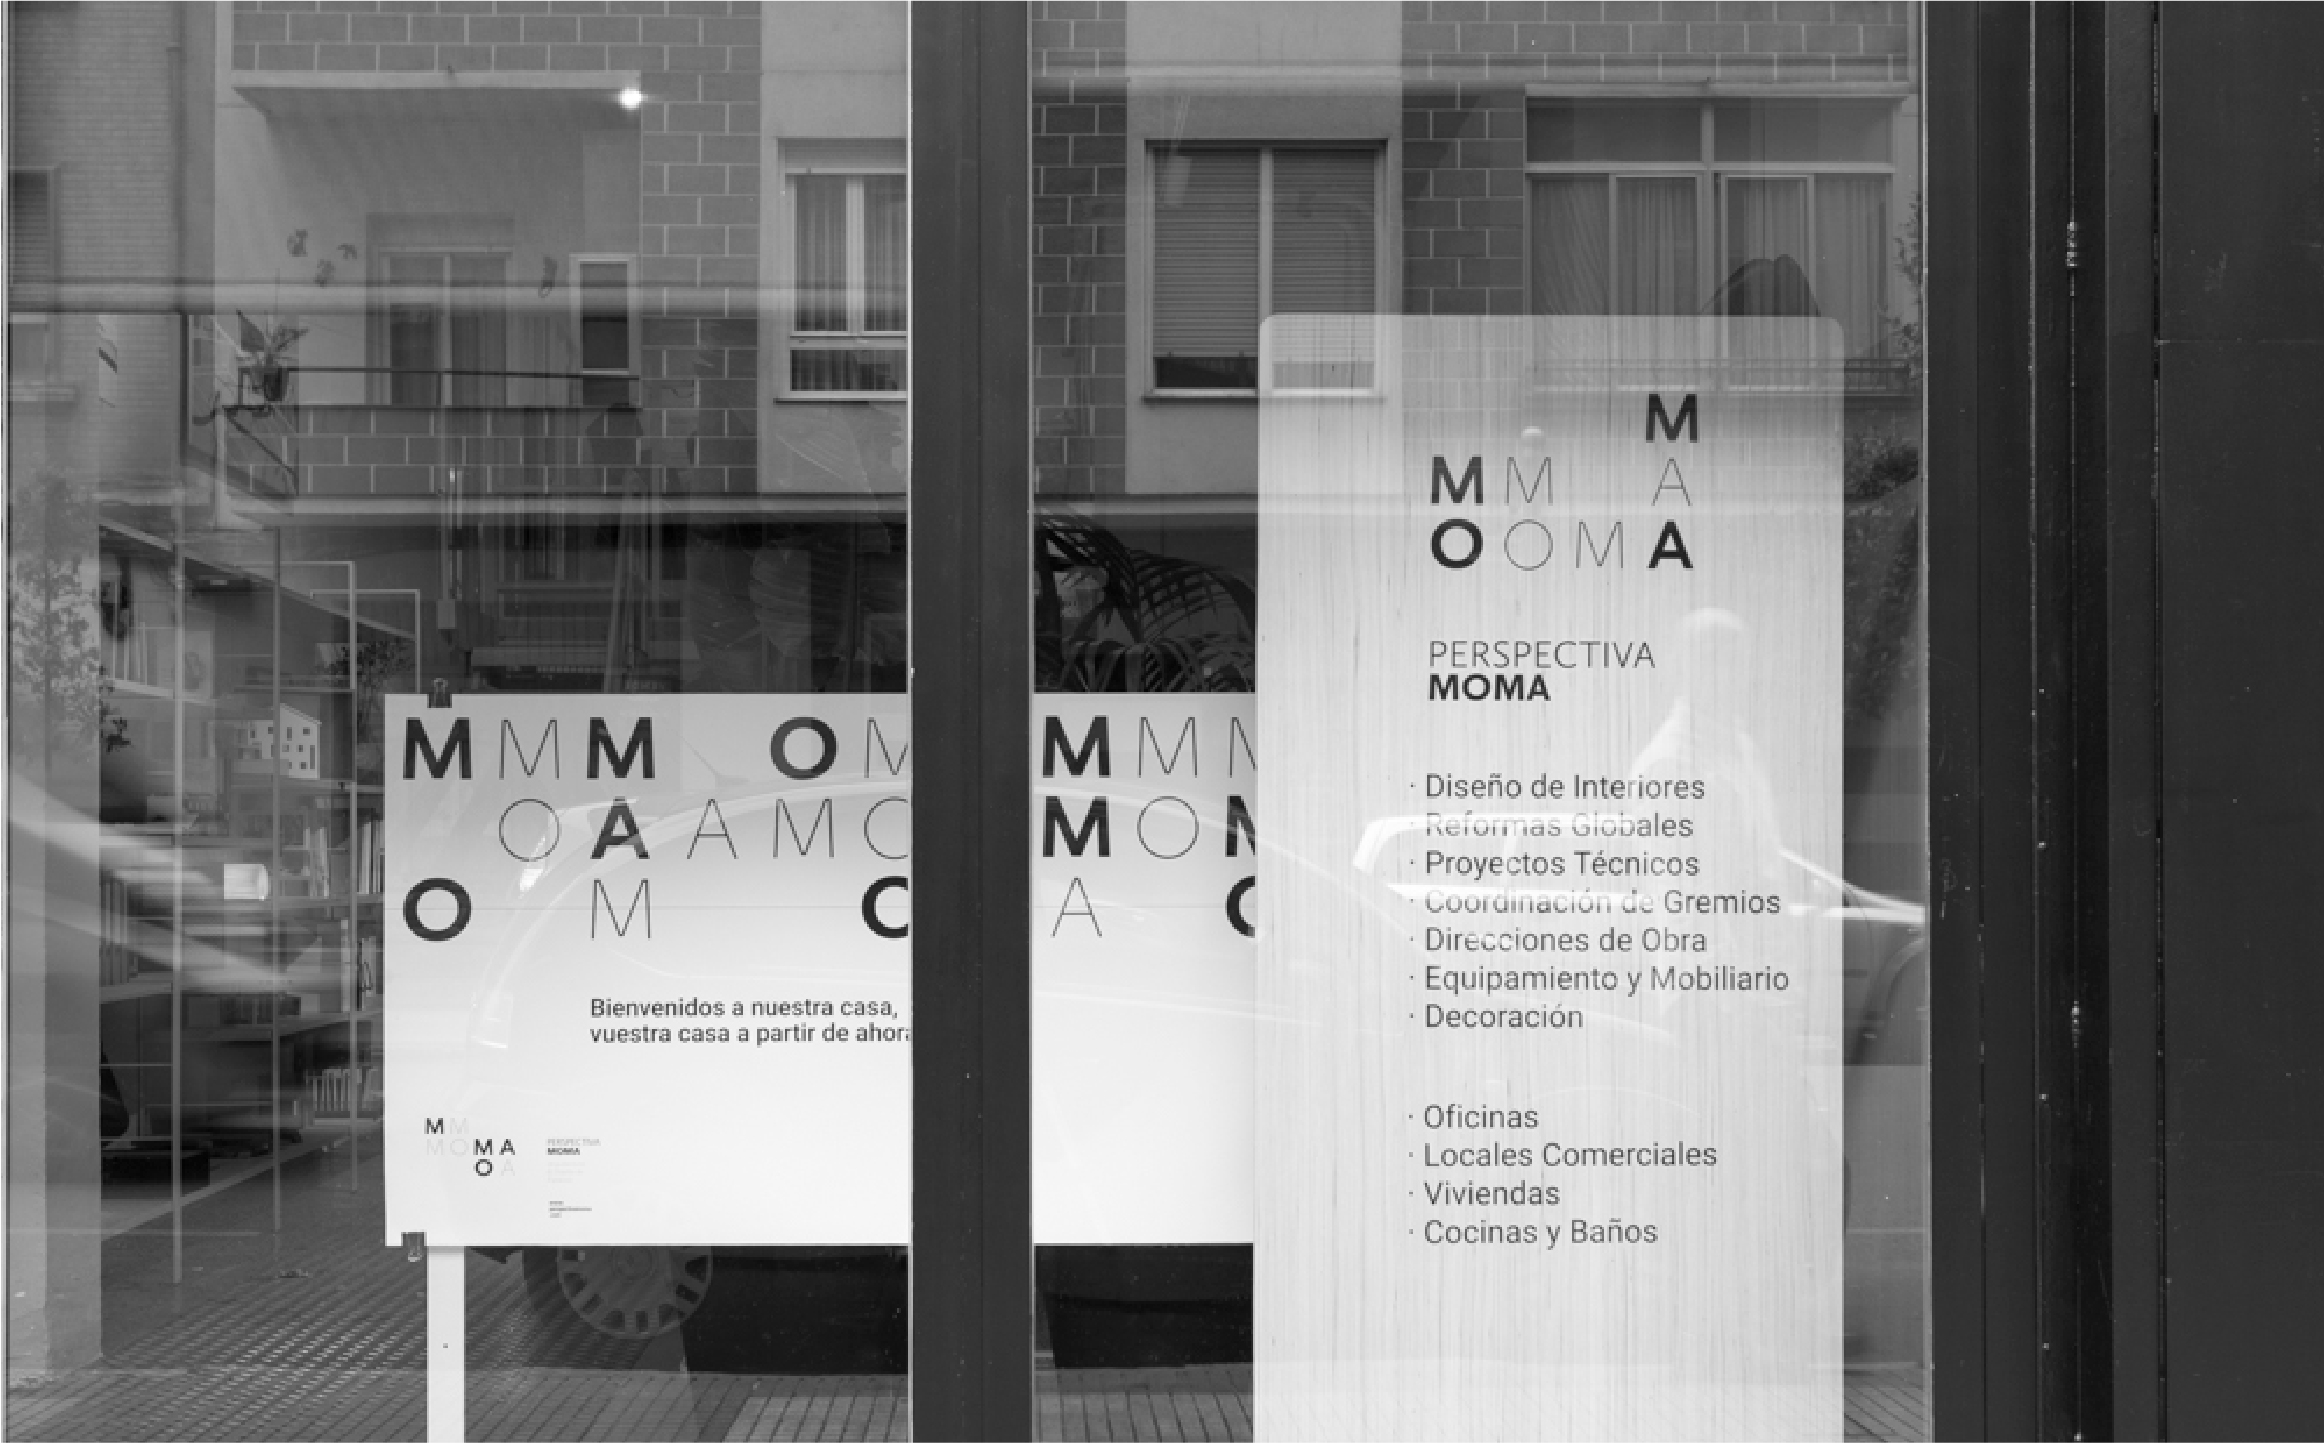 Proyecto MOMA 04 12 - Perspectiva Moma -